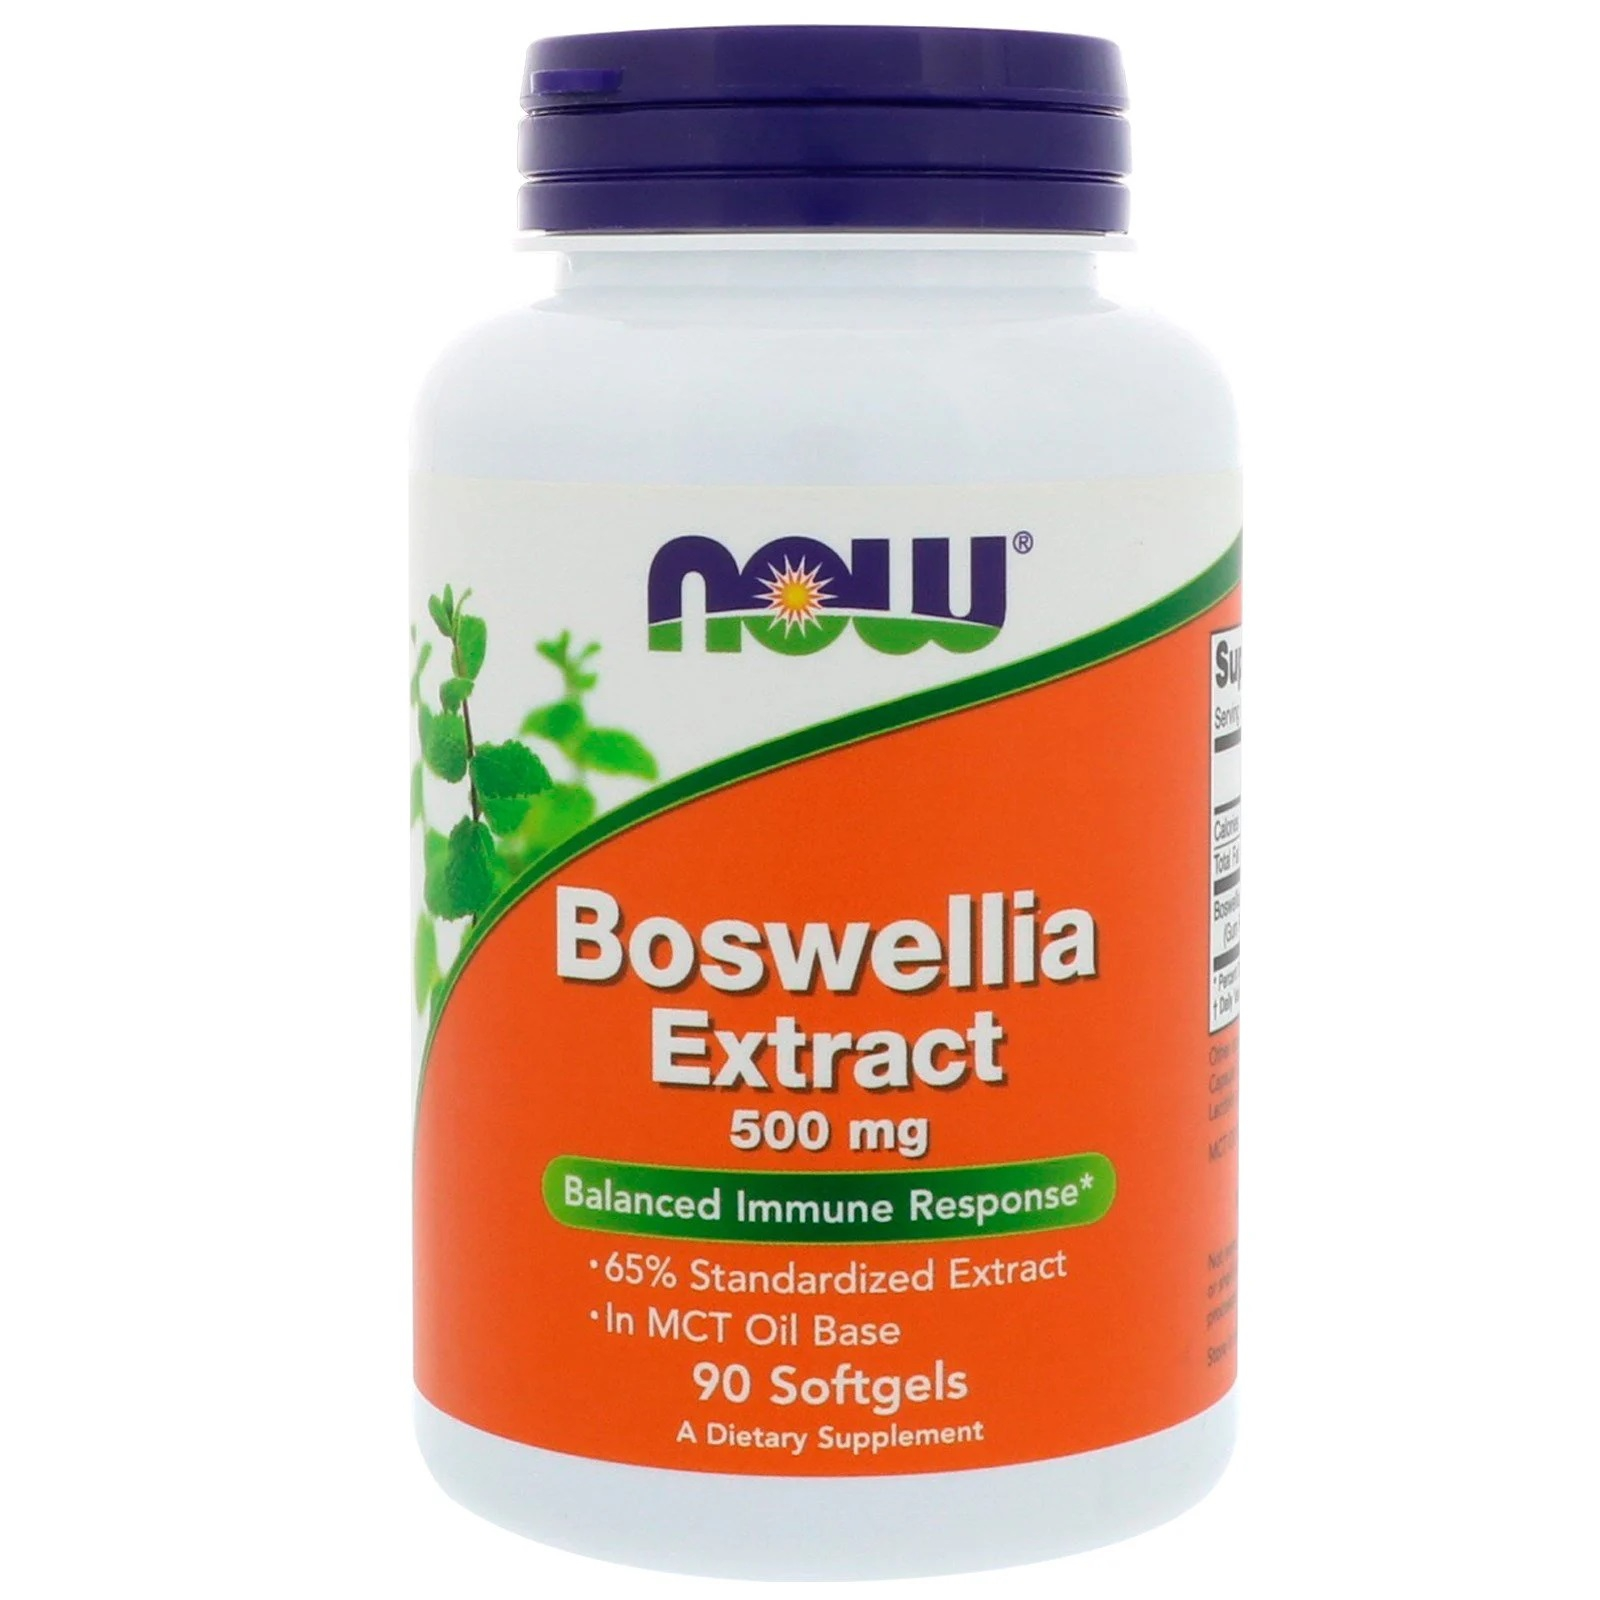 Image of Boswellia Extract 500 mg (90 softgels) - Now Foods 0733739049360